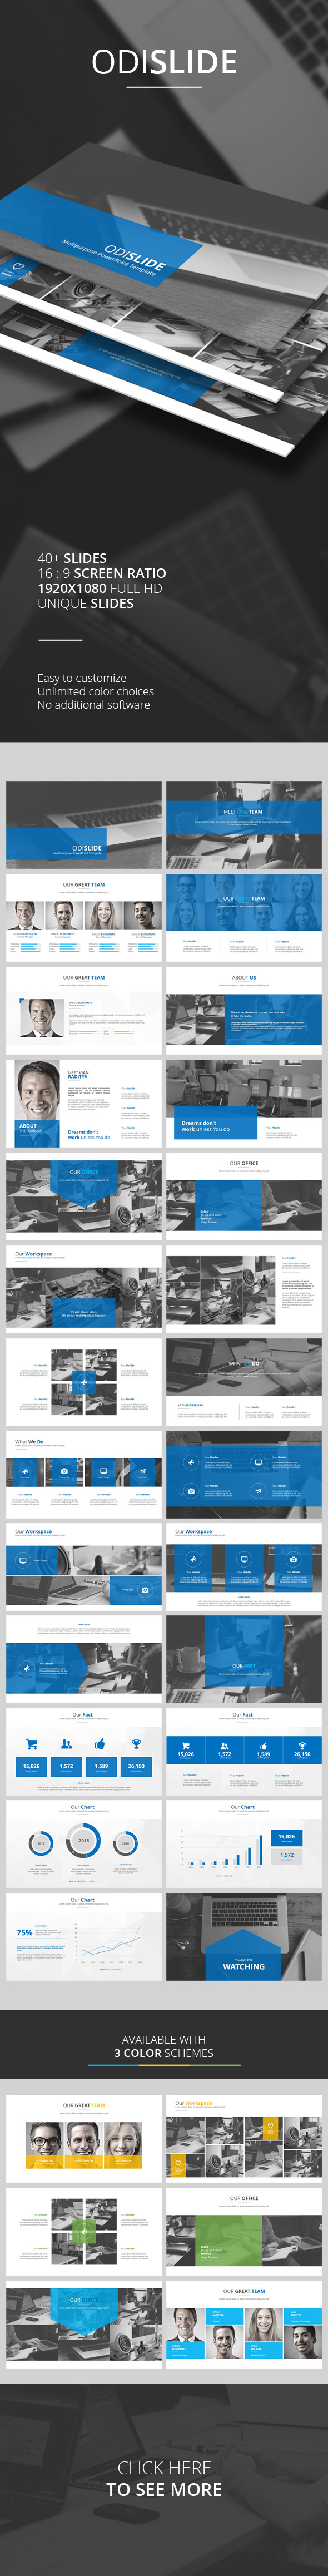 GraphicRiver Odislide PowerPoint Template 9942996